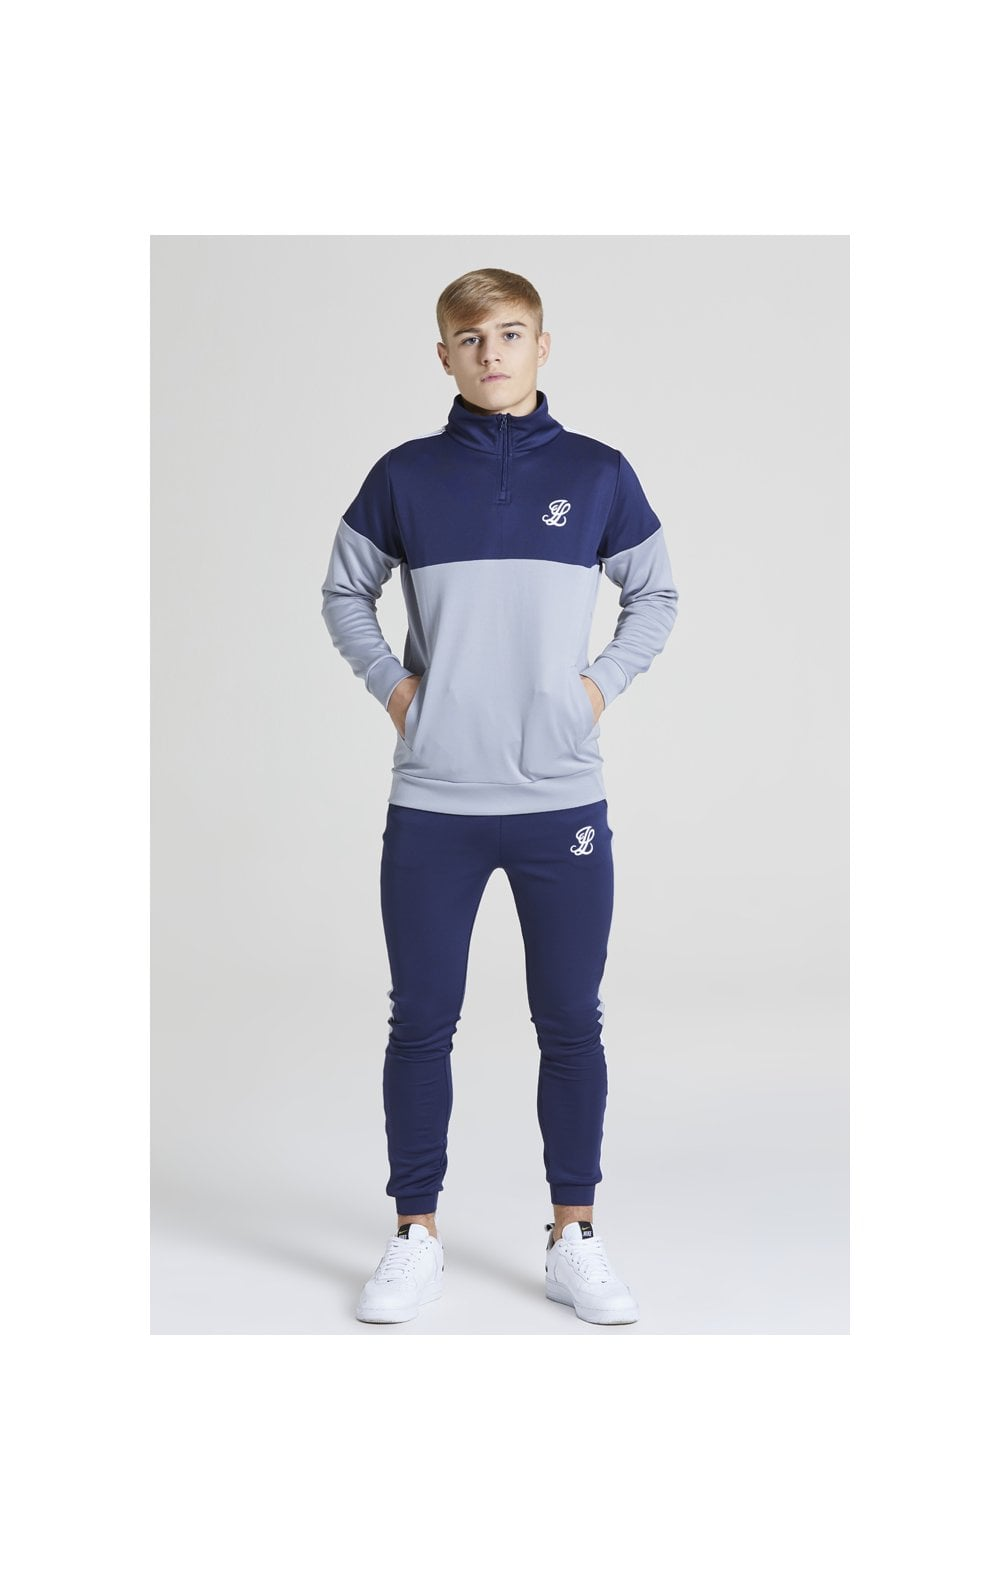 Illusive London Taped Joggers - Navy & Grey (3)